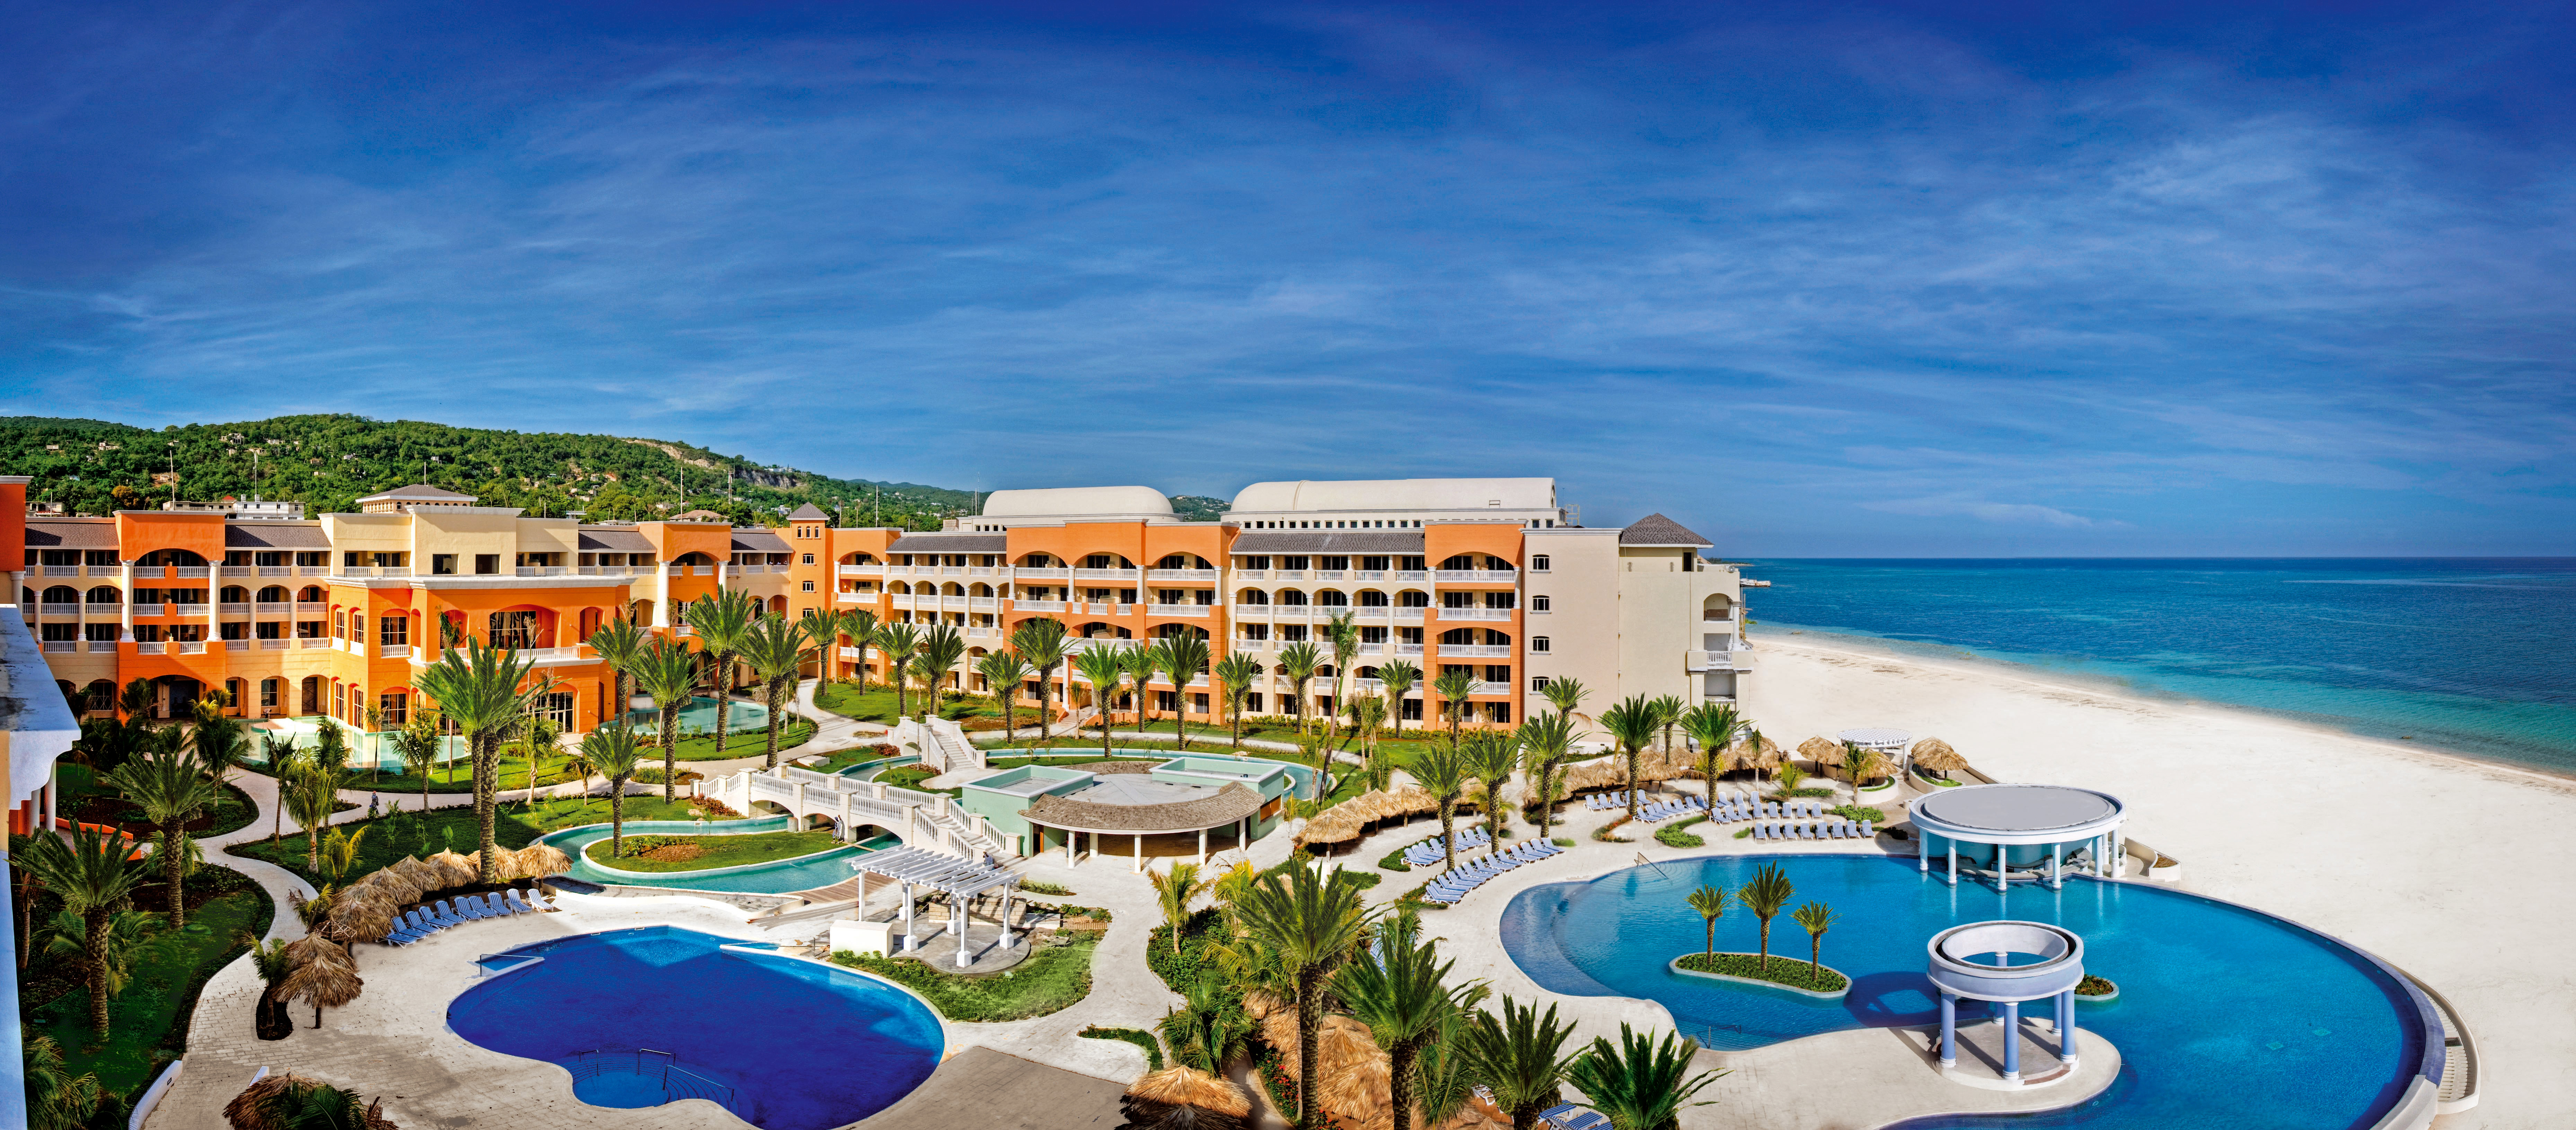 An Ode to IBEROSTAR | GOGO Vacations Blog